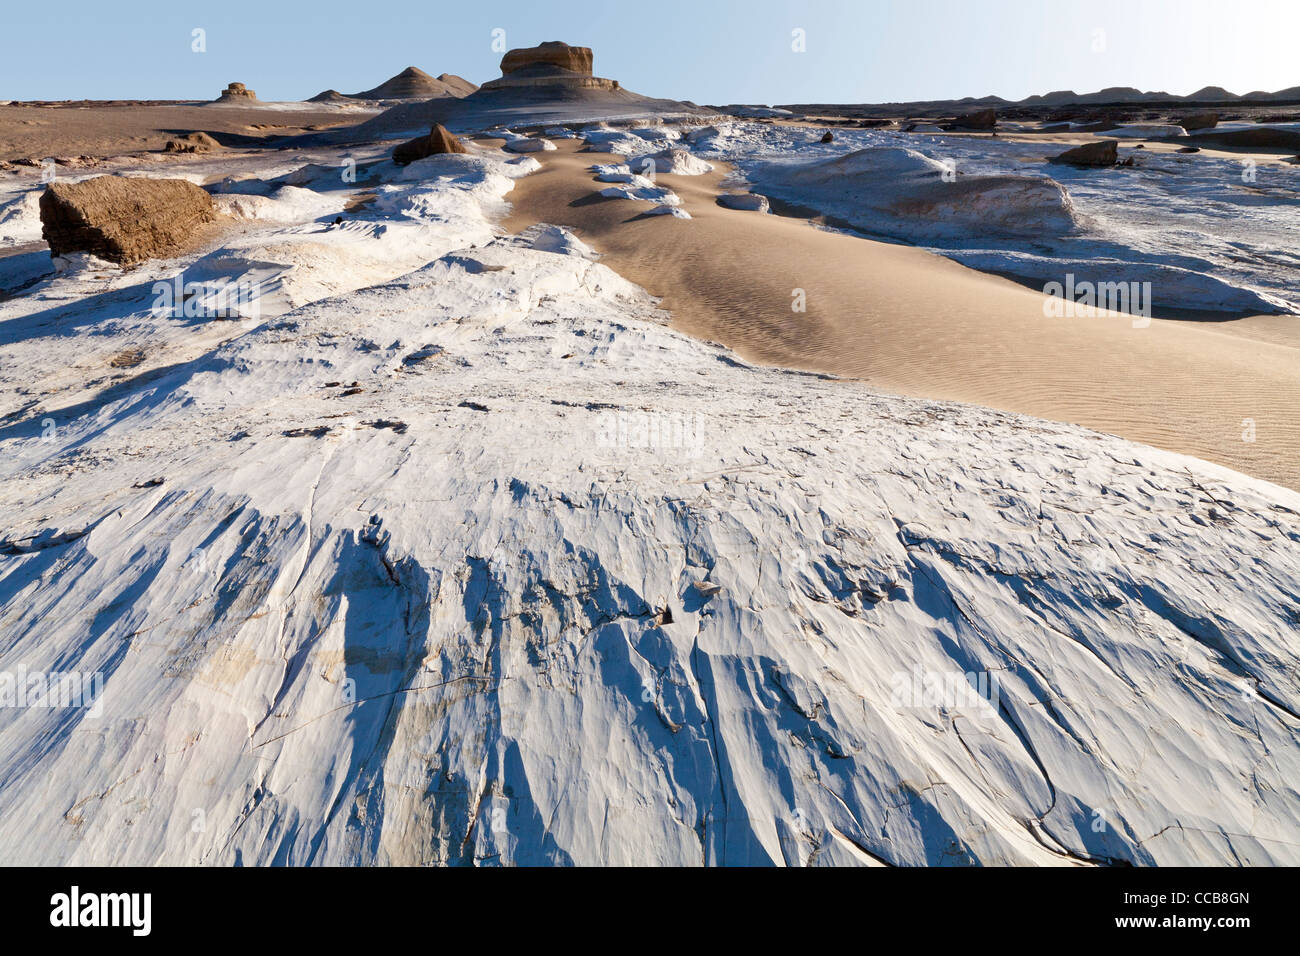 White limestone intrusion on edge of yardang field Dakhla Oasis Egypt  Africa - Stock Image